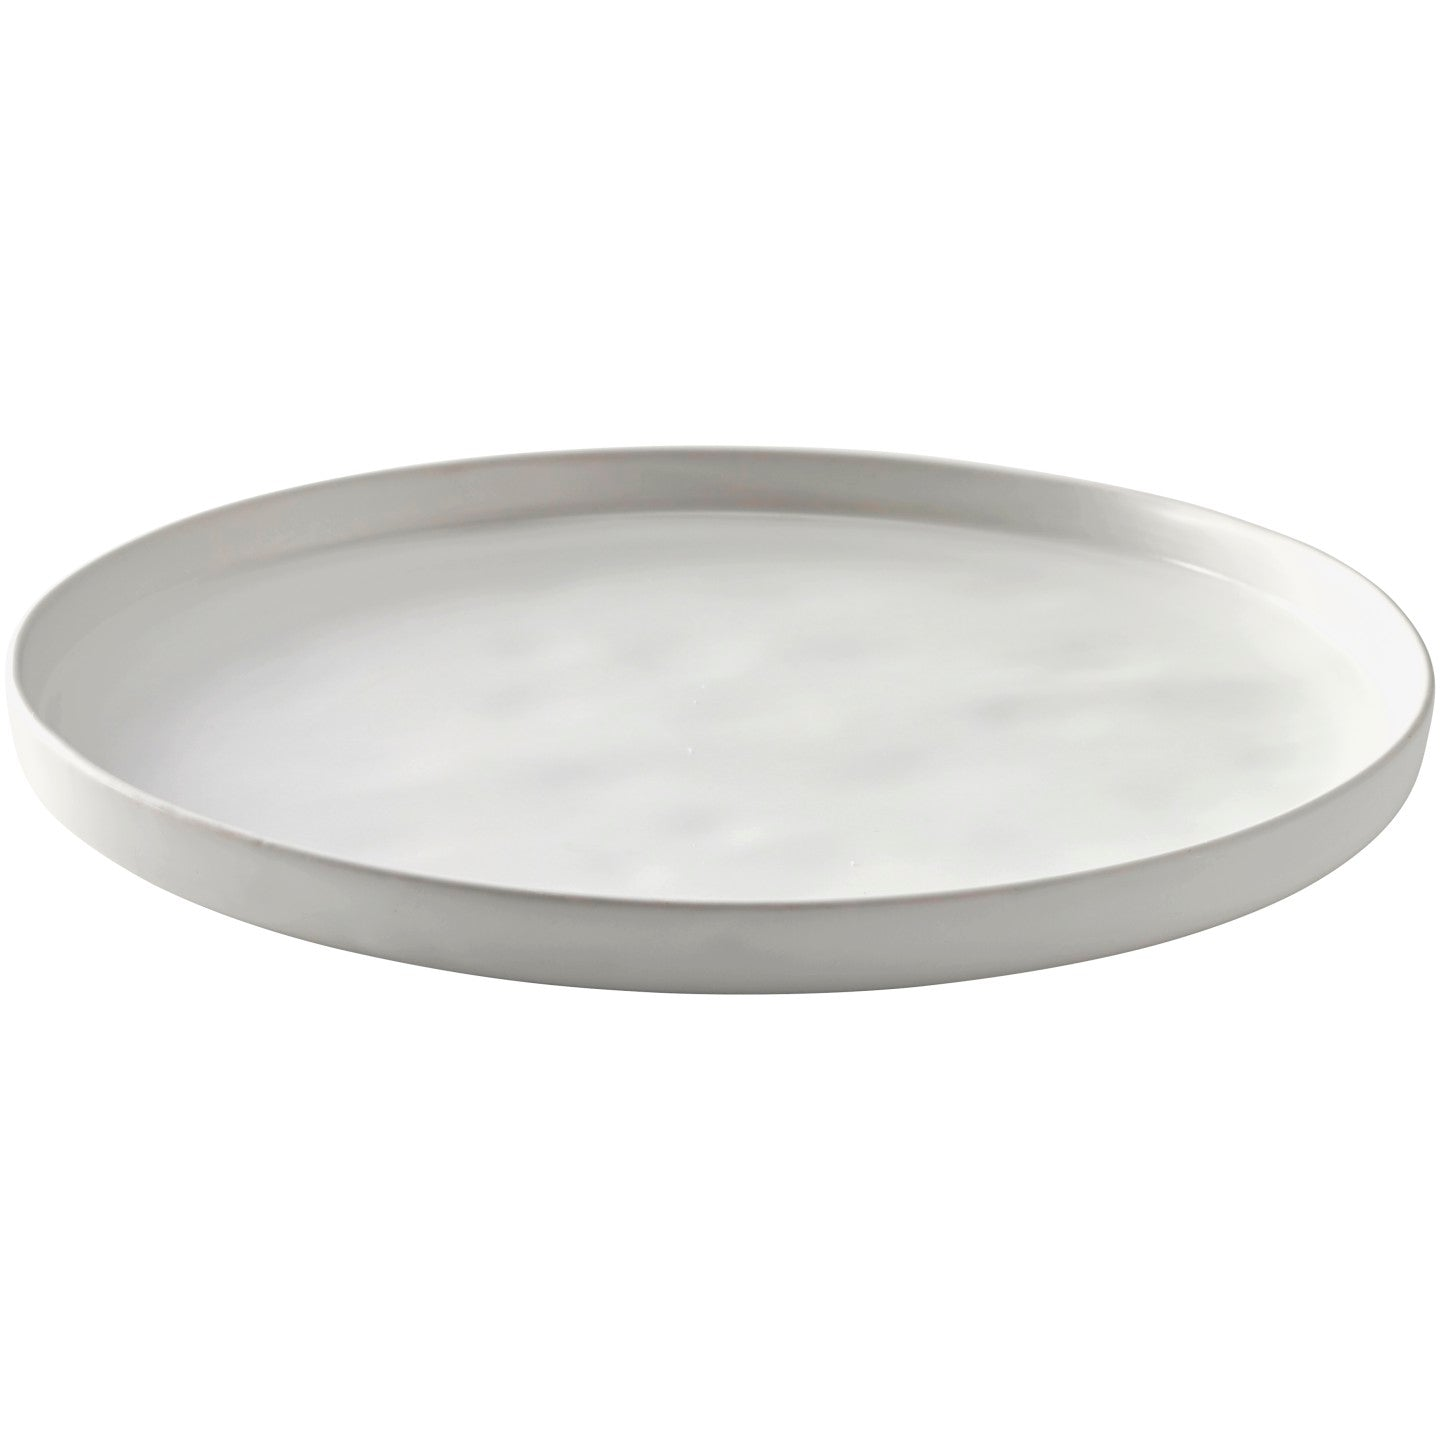 32cm Kaia Round Oven Proof Platter